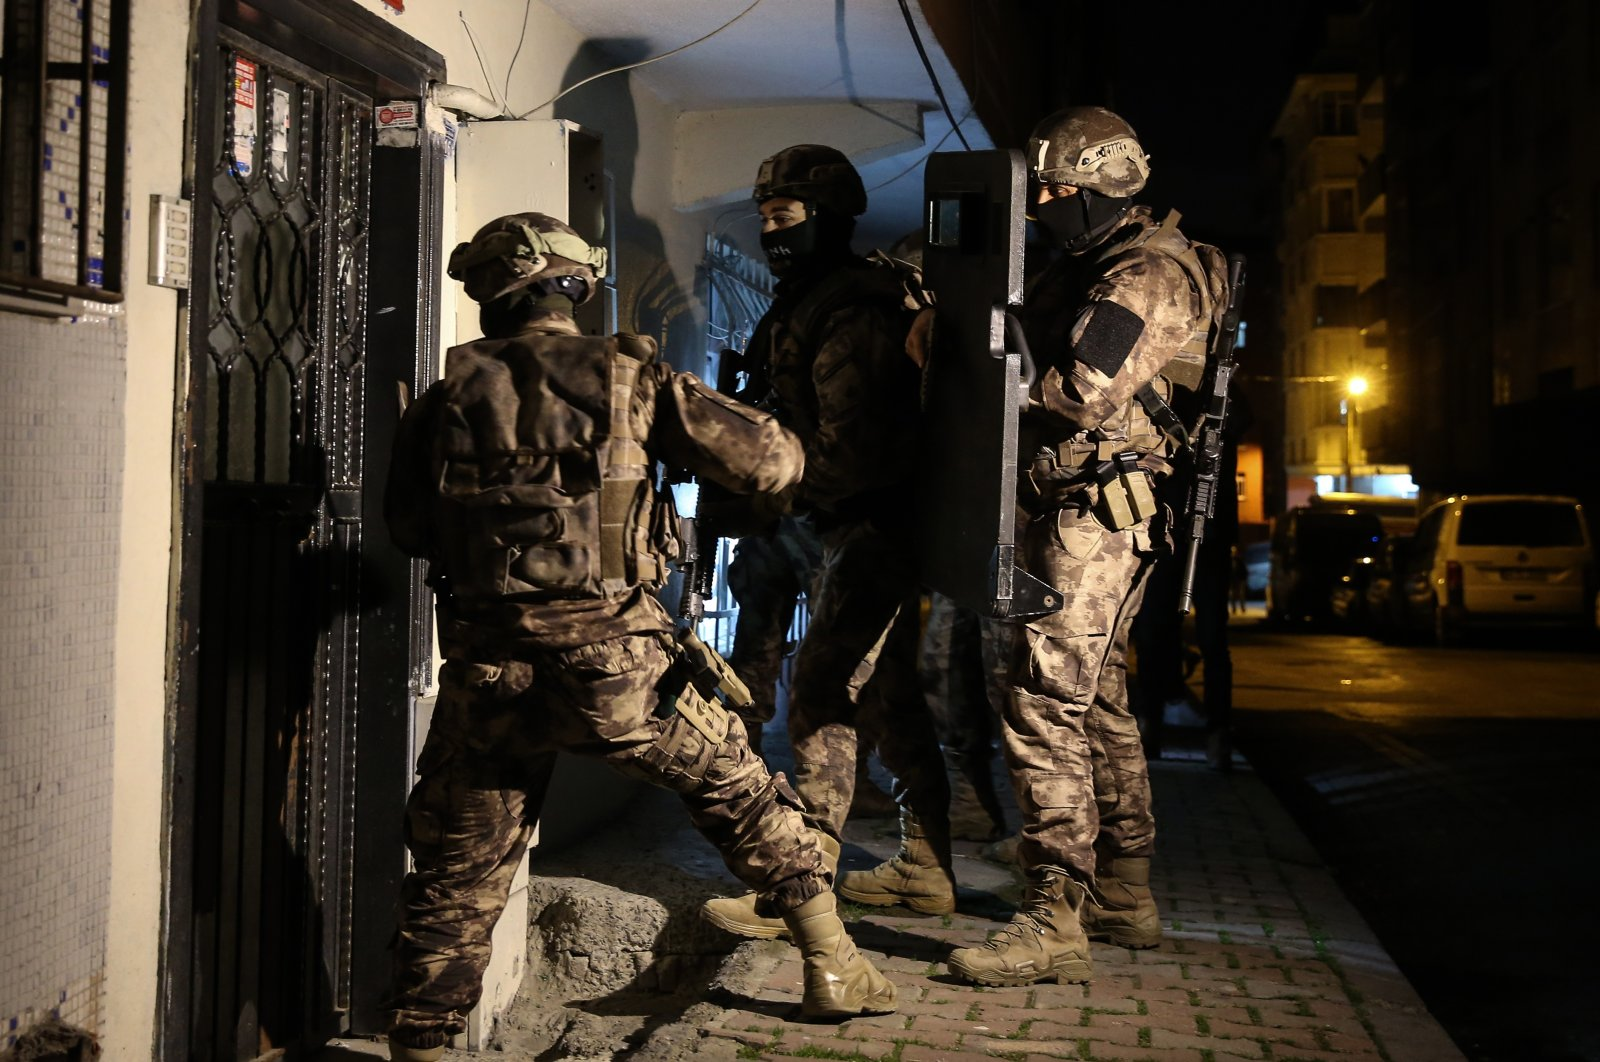 Counterterrorism squads raid an address as part of an operation against PKK suspects in Istanbul, Turkey, Nov. 26, 2020. (AA Photo)